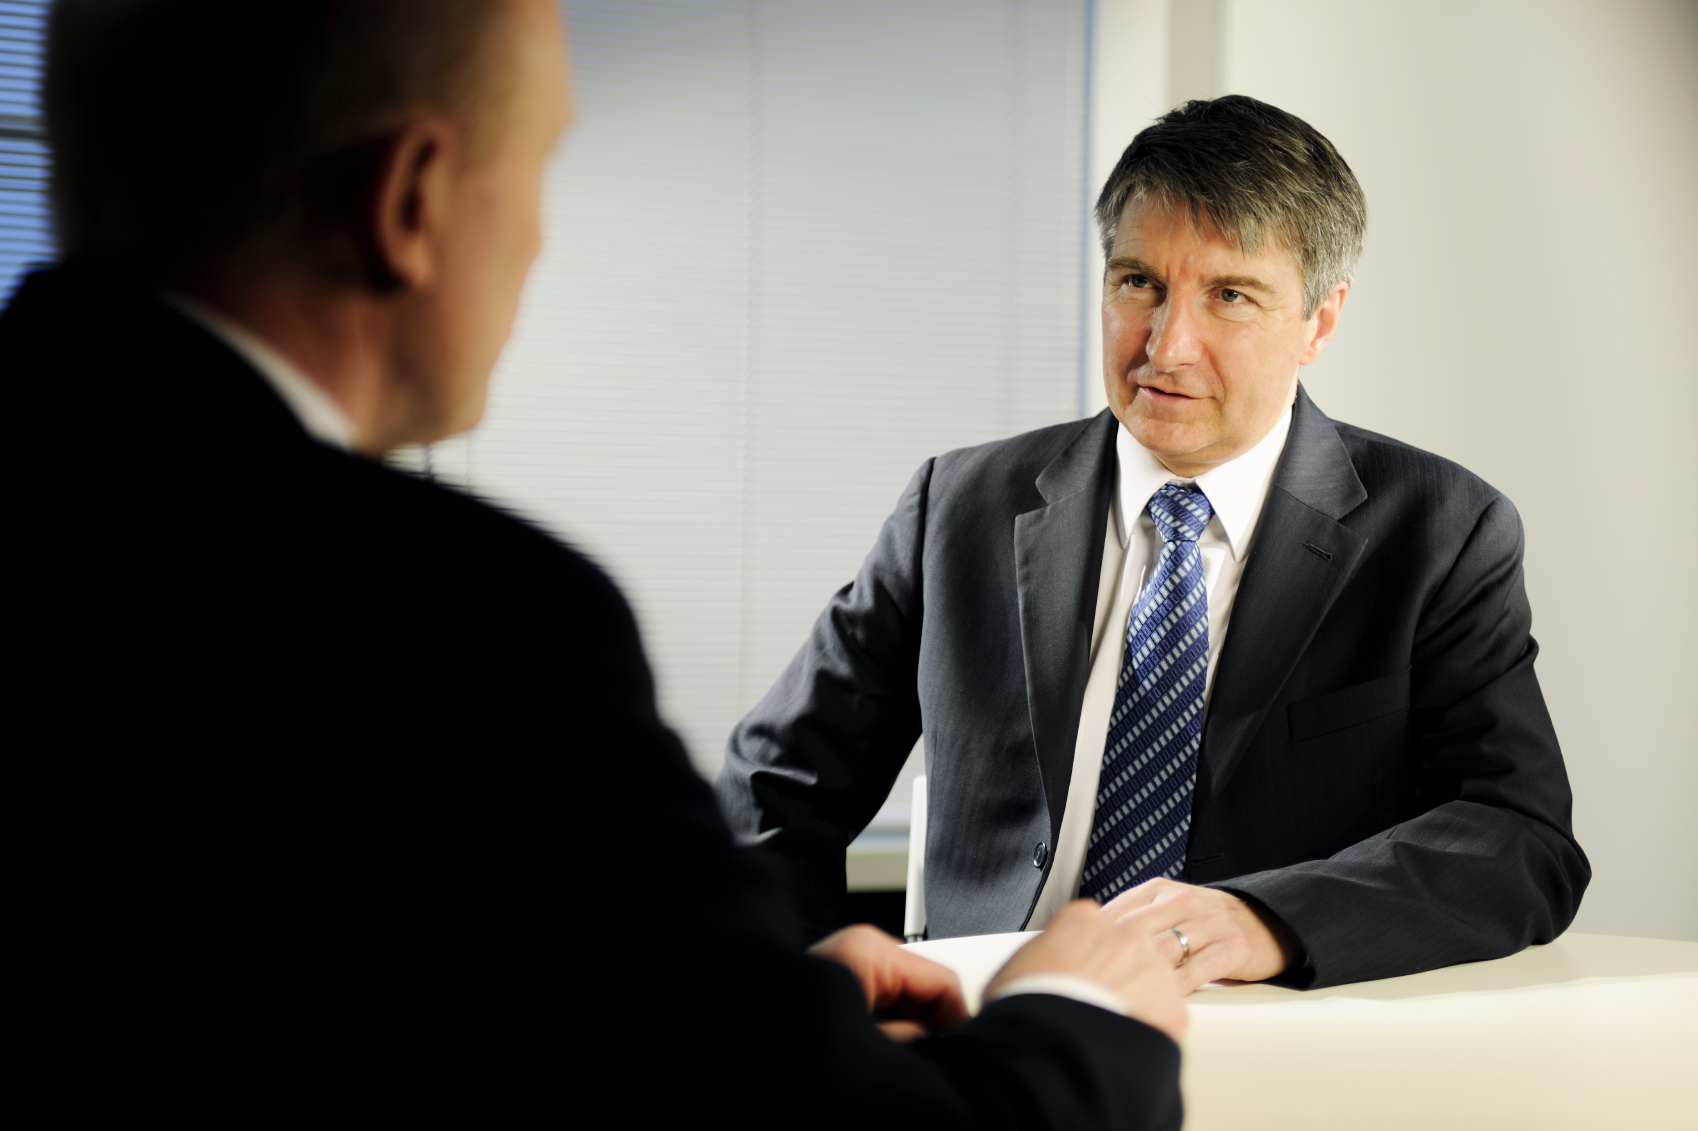 How to spot liars in job interviews